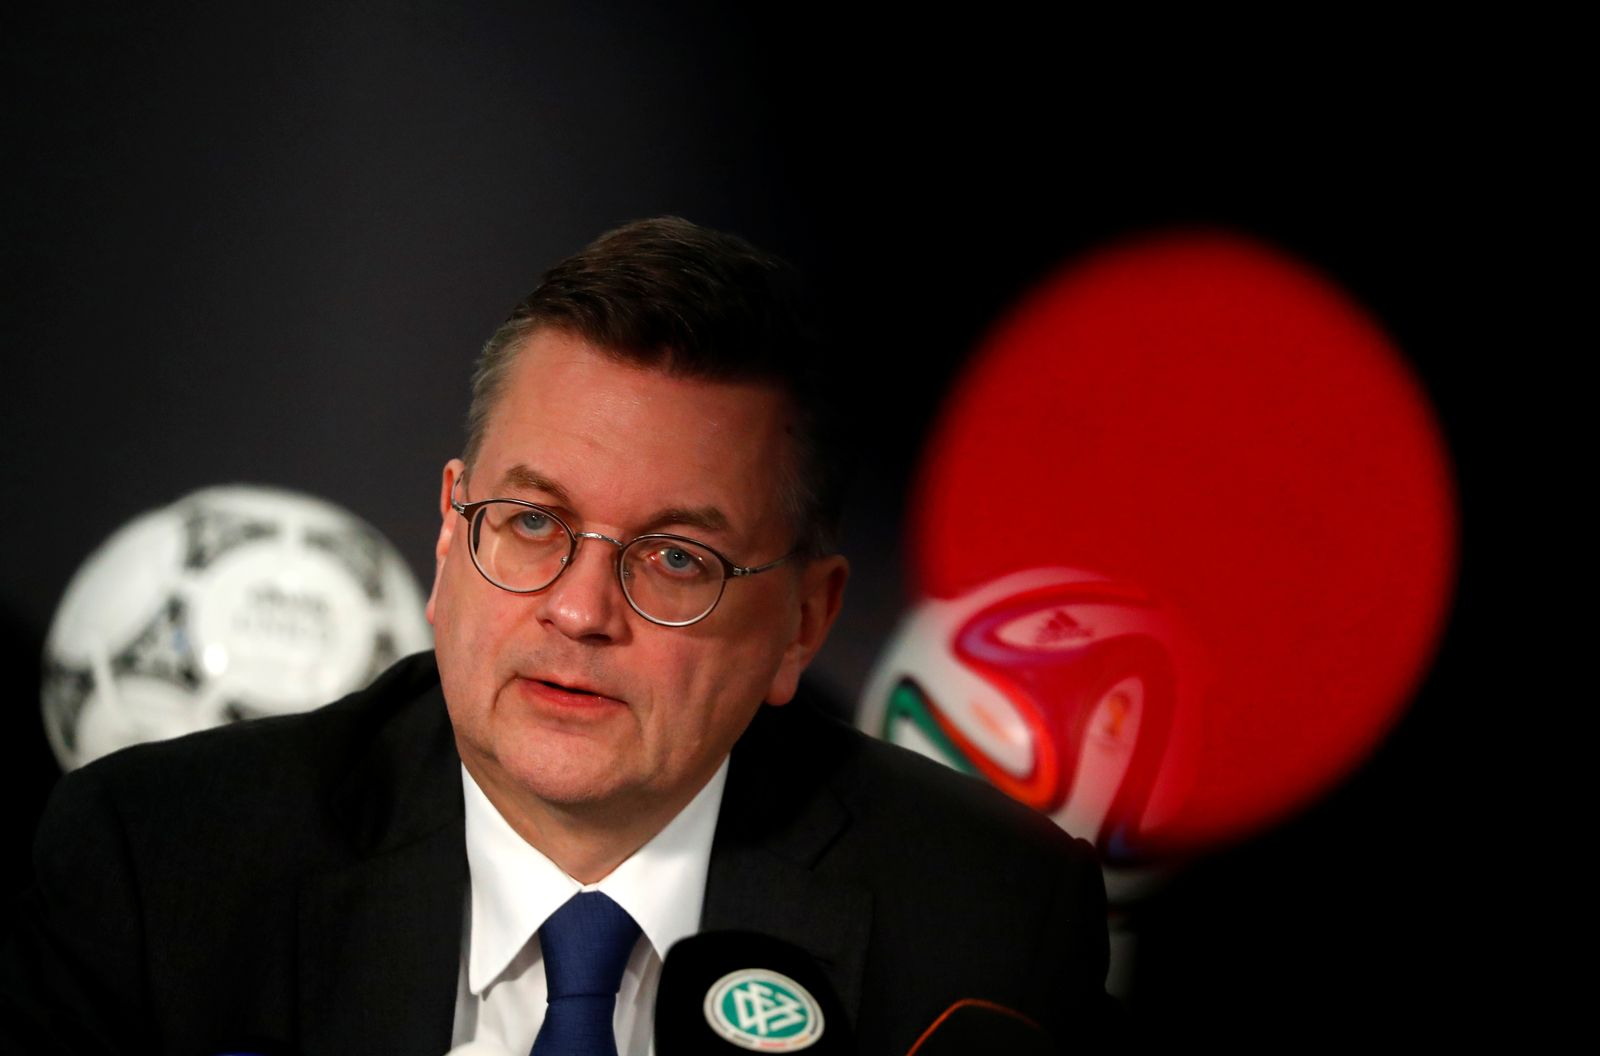 SOCCER-GERMANY/GRINDEL